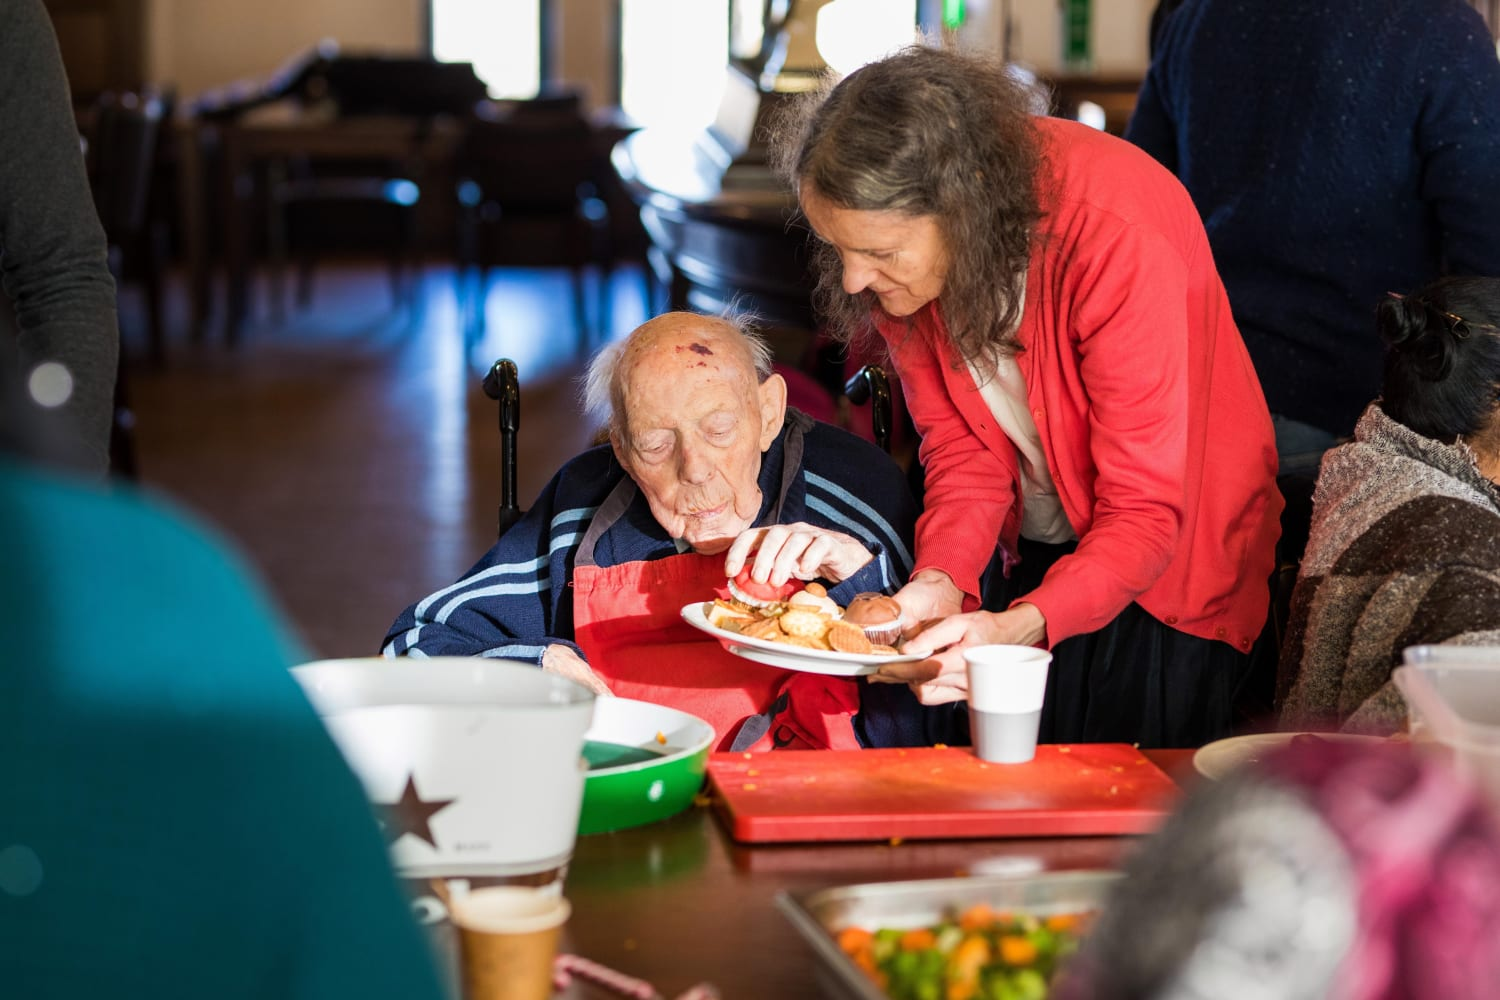 Soep food and cooking for the elderly